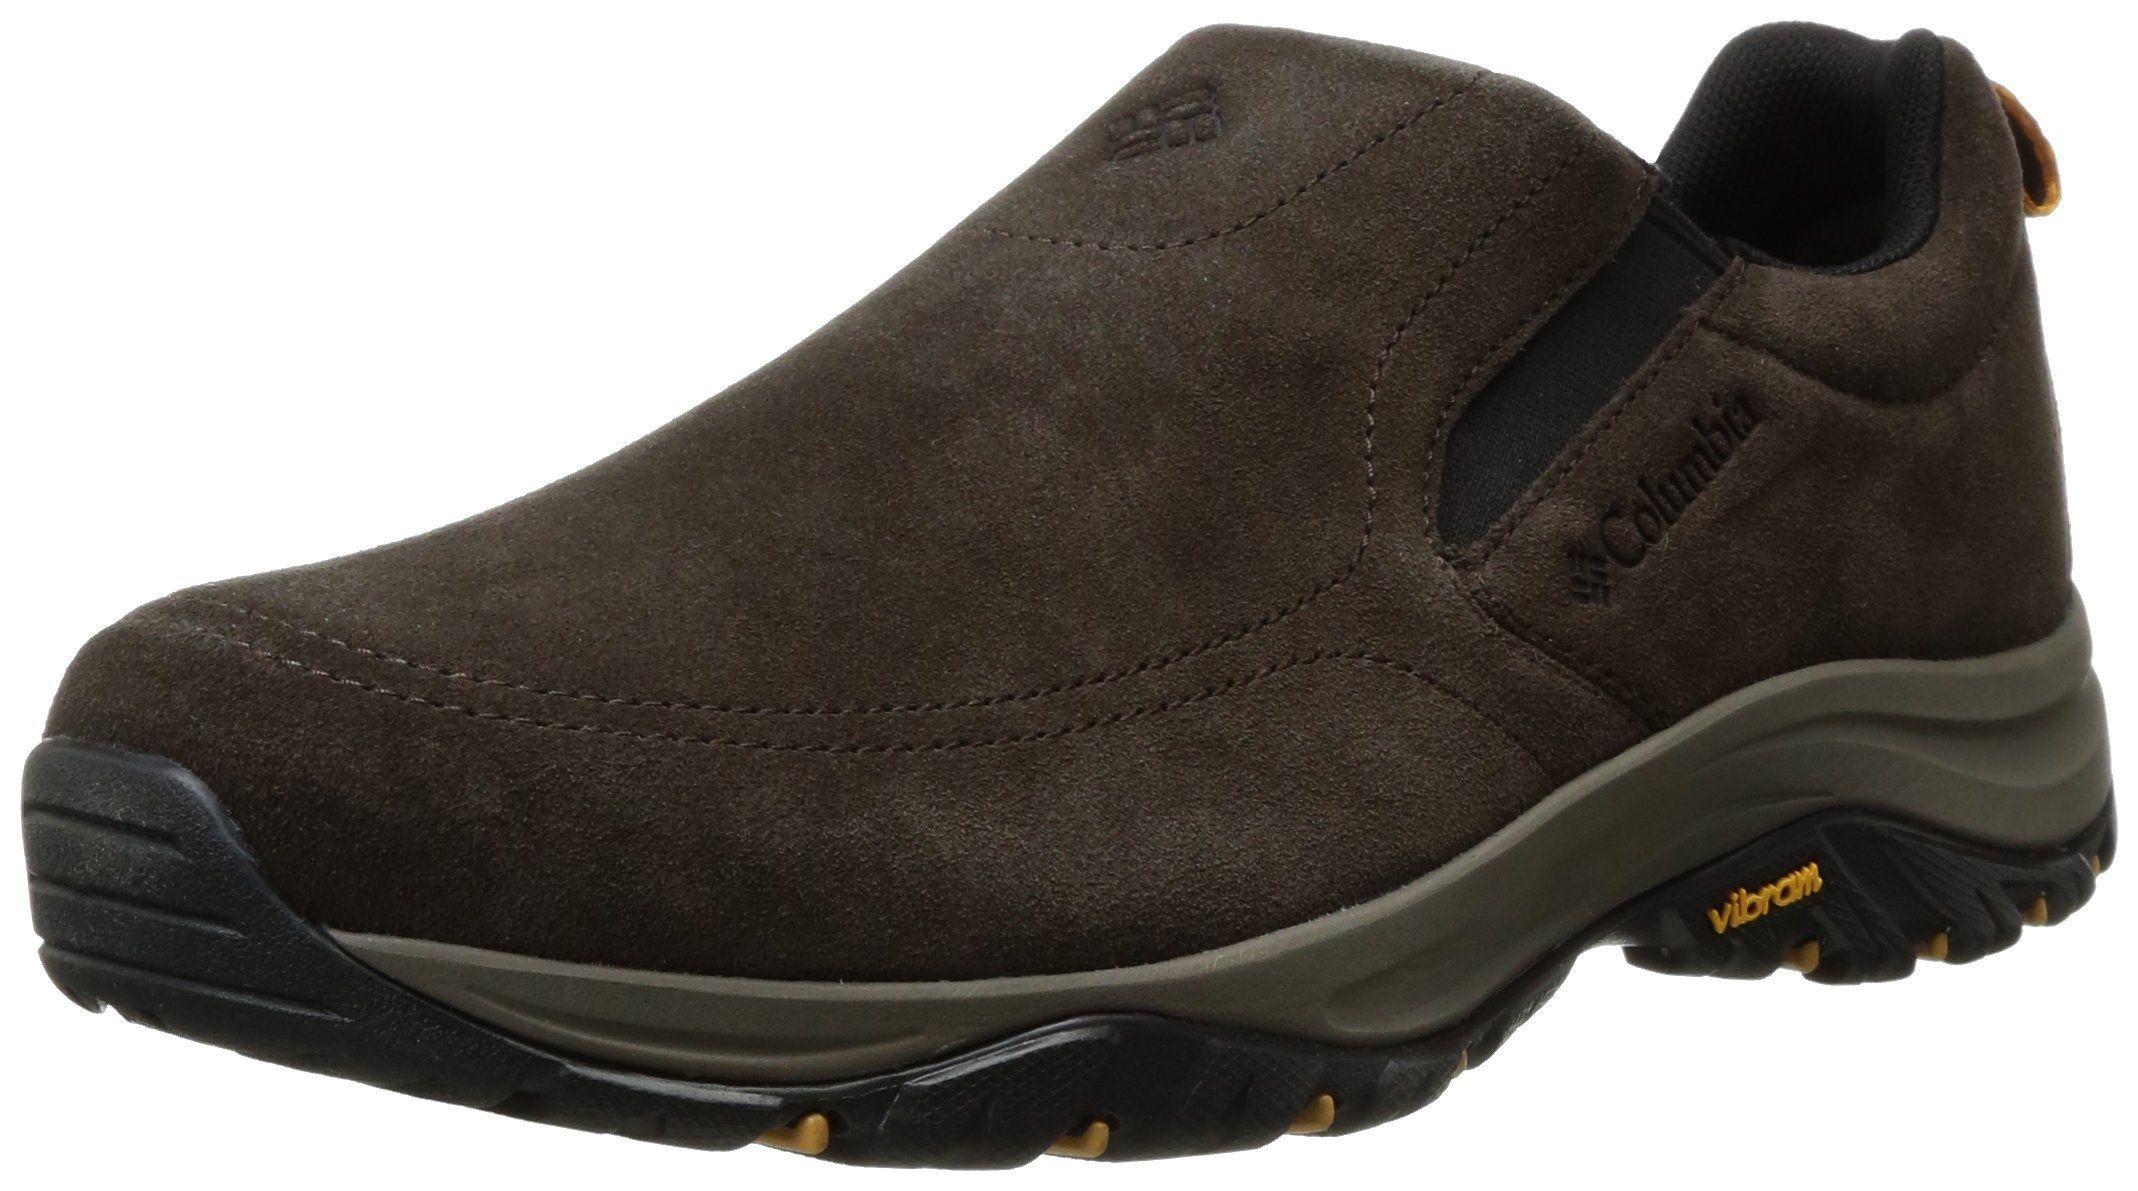 Columbia Men's Terrebonne Moc Uniform Dress Shoe, Cordovan, Black, 7 D US by Columbia